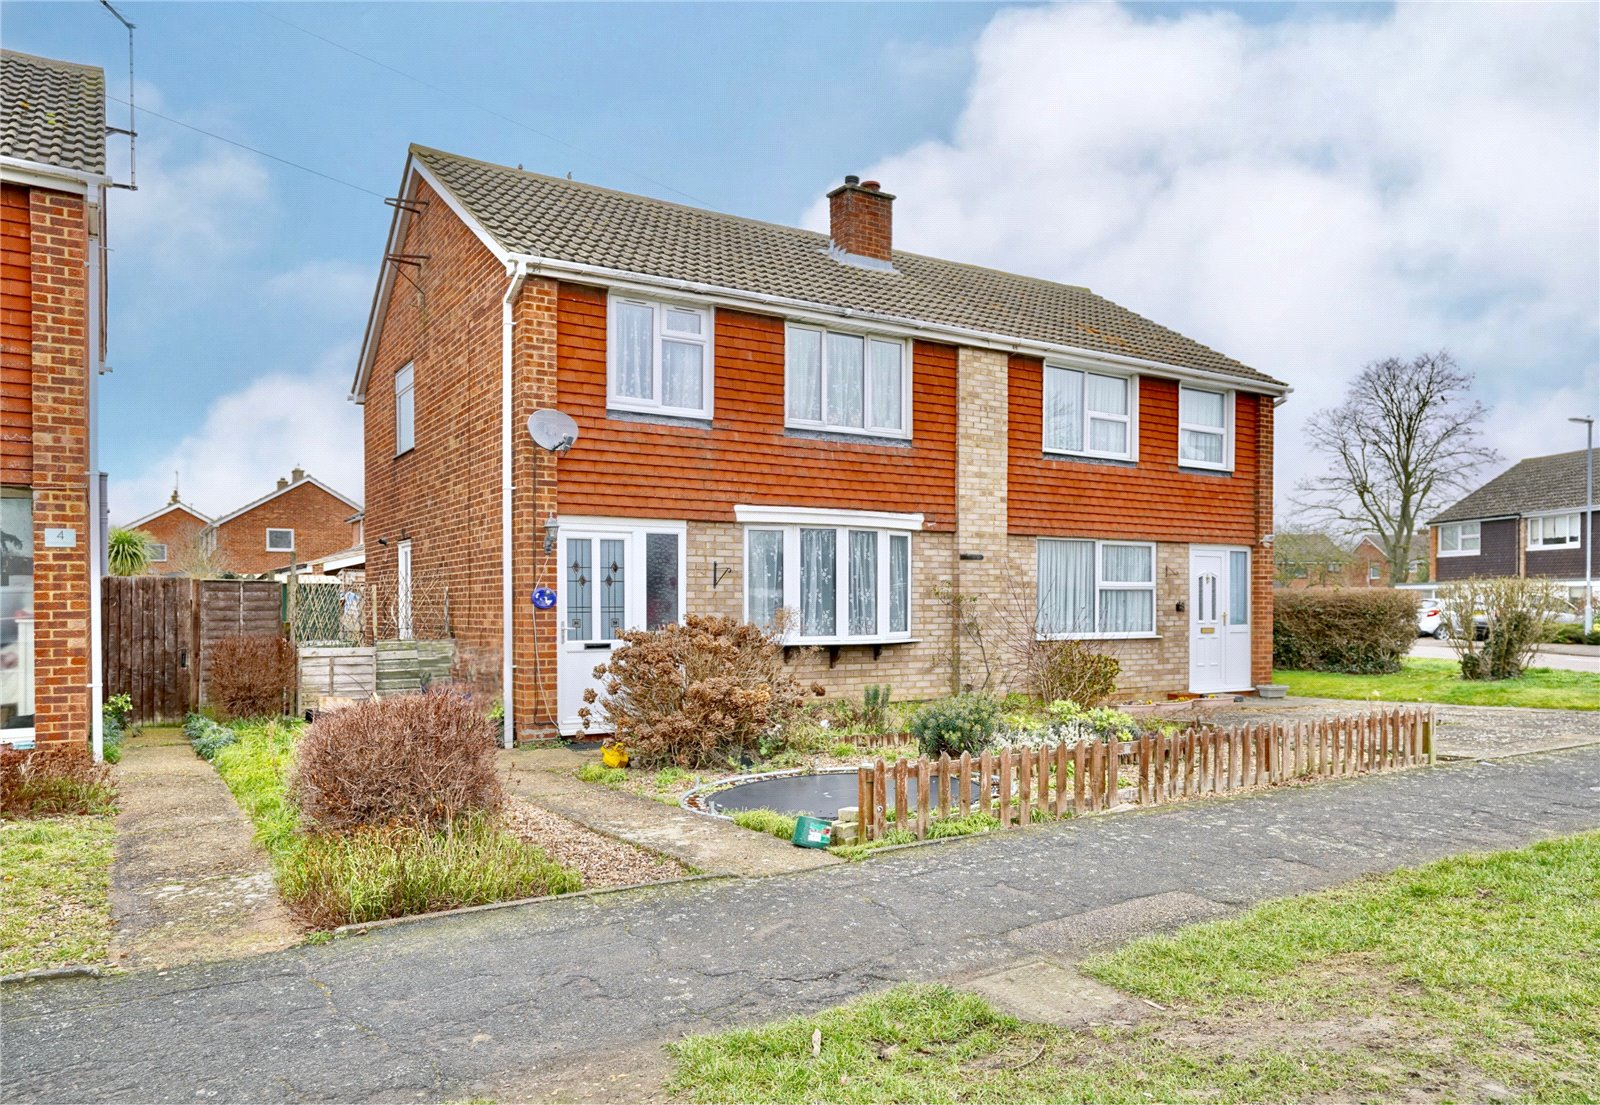 3 bed house for sale in Little Paxton, Gordon Road, PE19 6LU, PE19